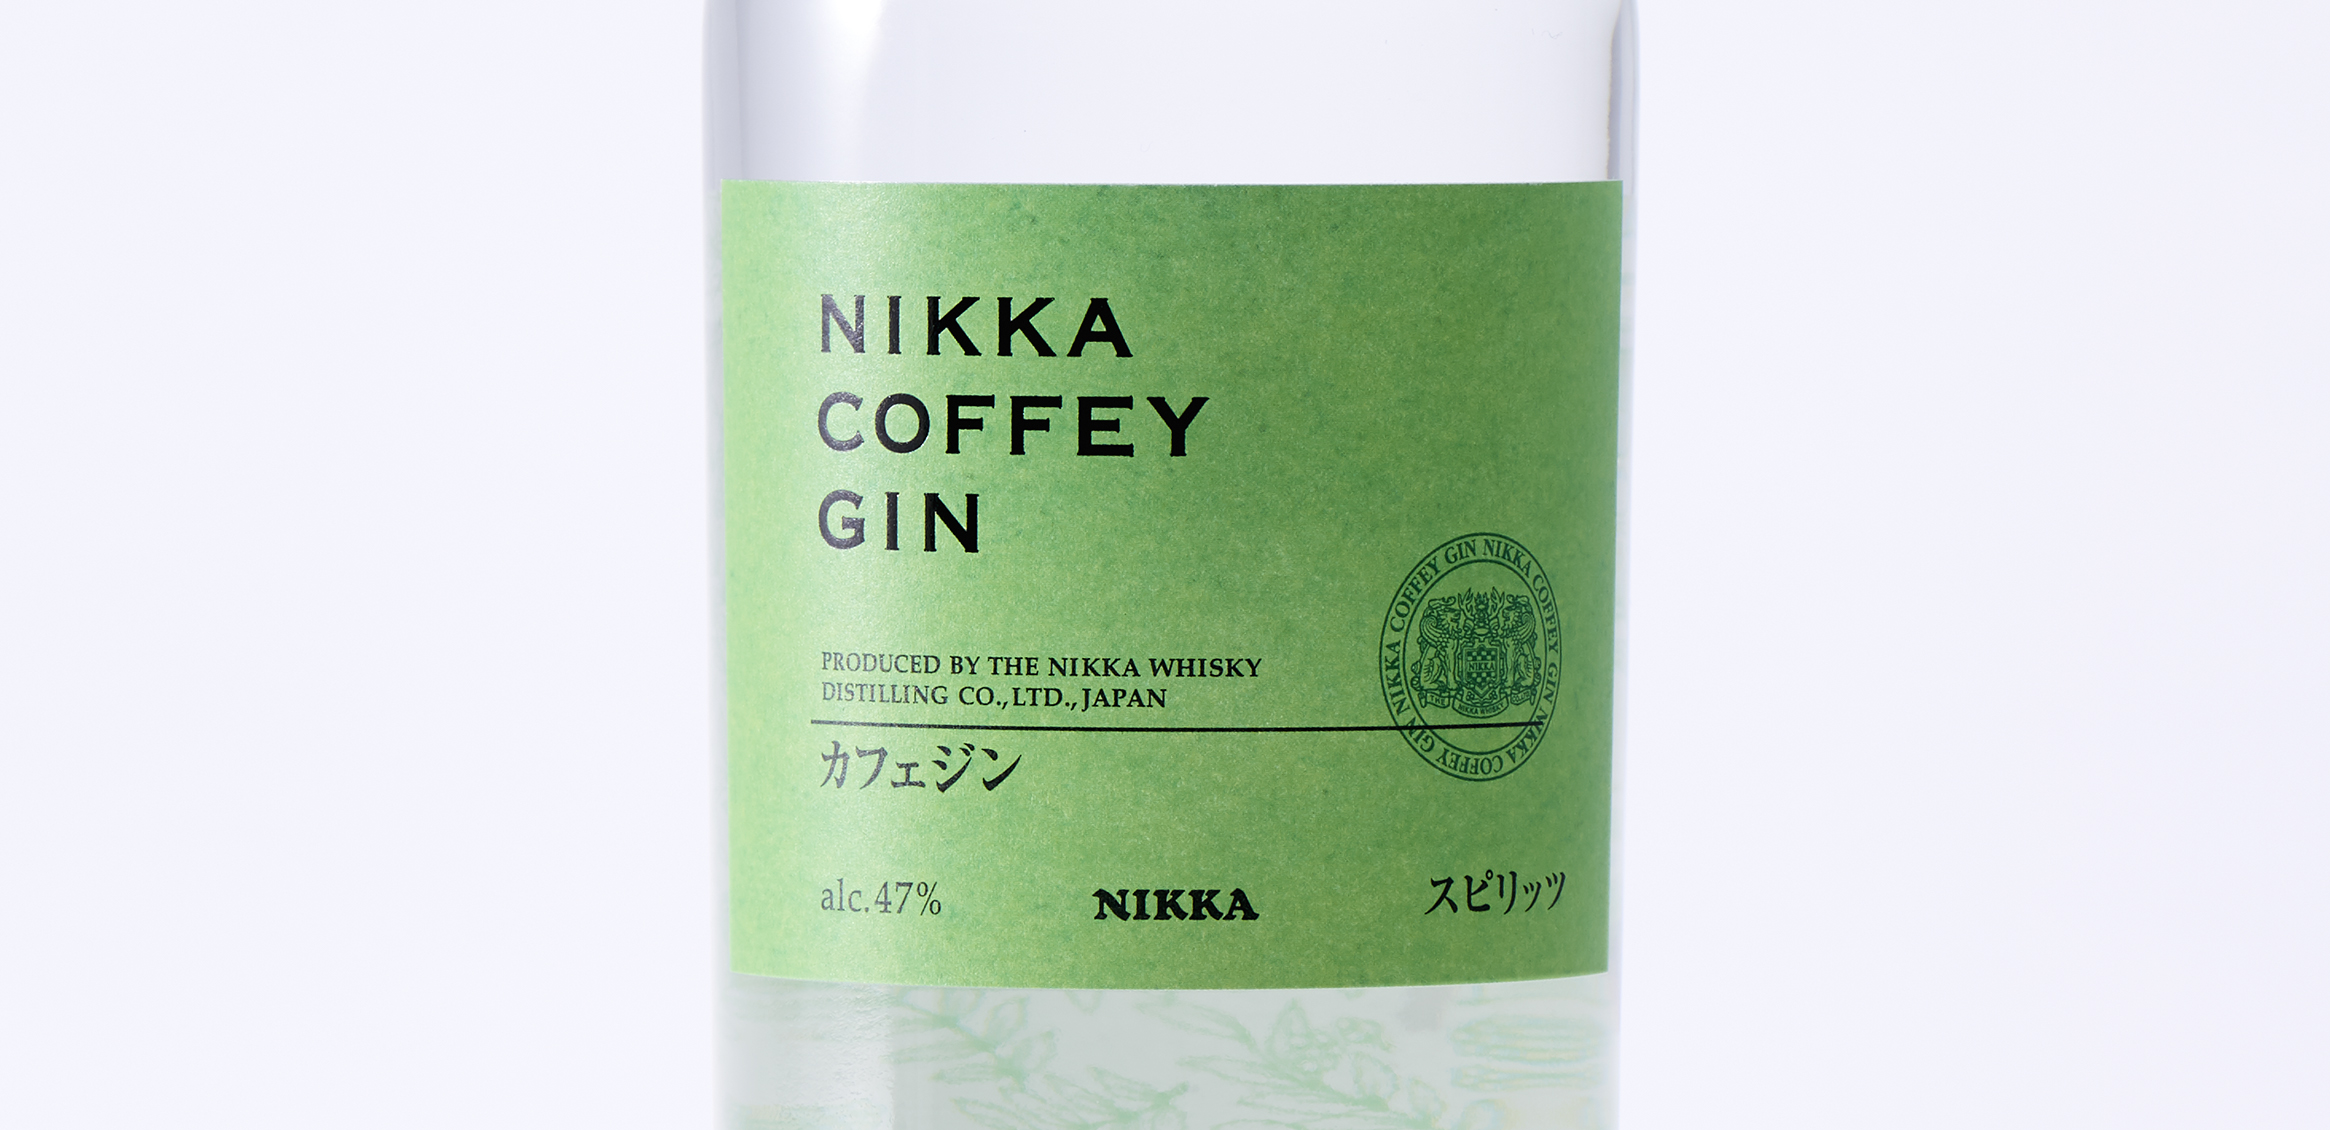 NIKKA COFFEY GIN / COFFEY VODKA1枚目